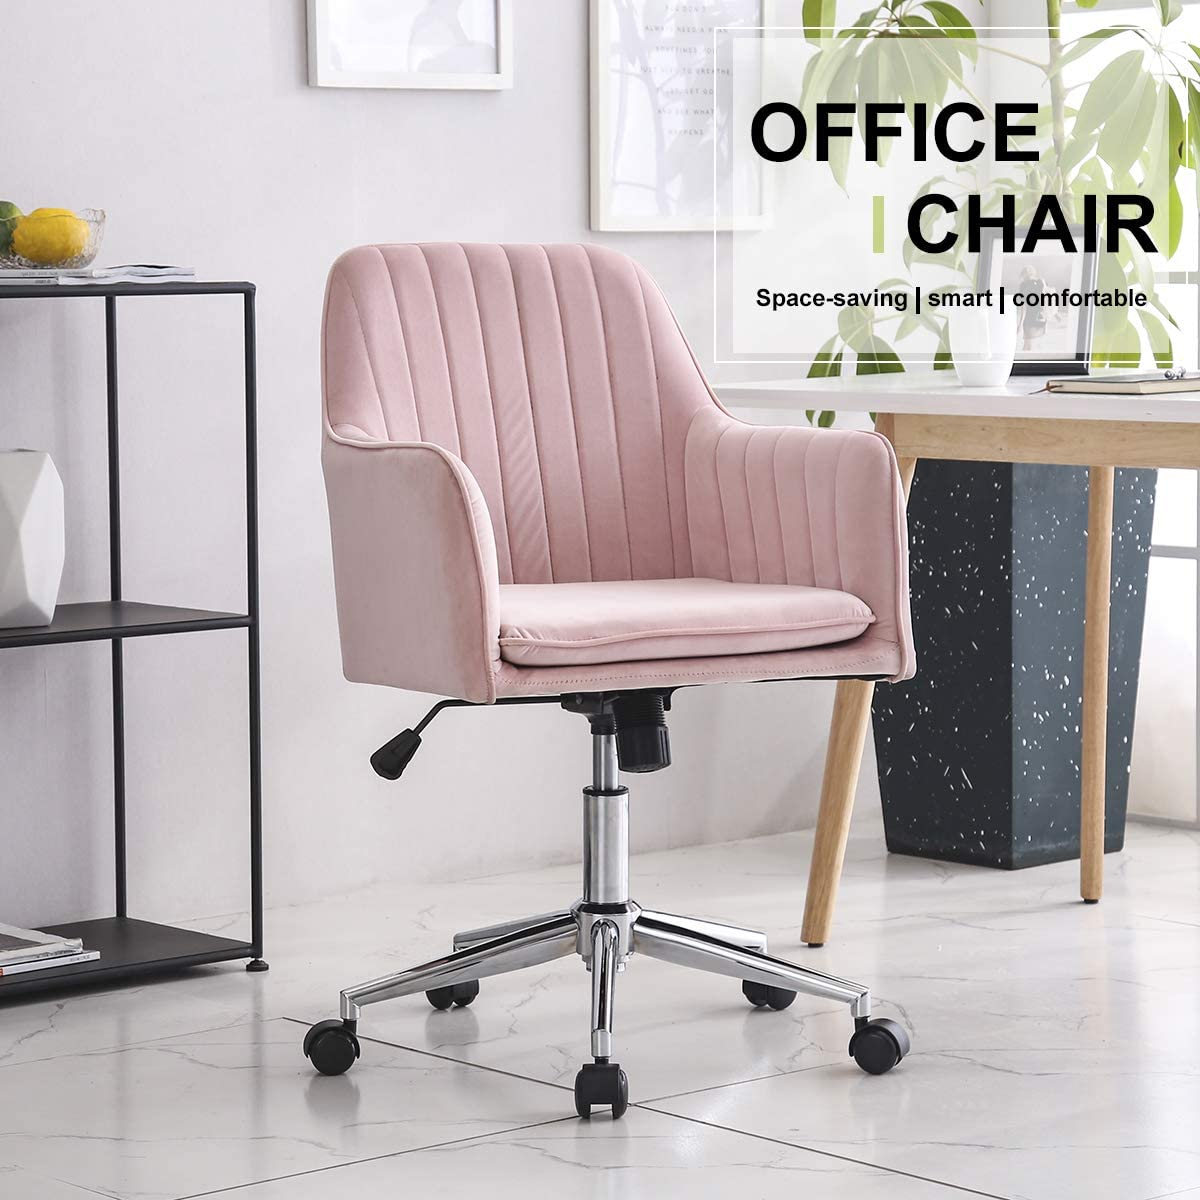 Hironpal Modern Velvet Office Chair Armchair Office Living Room Bedroom  Accent Chair Ergonomics With Wheels Adjustable Rotary Lifter (Pink)